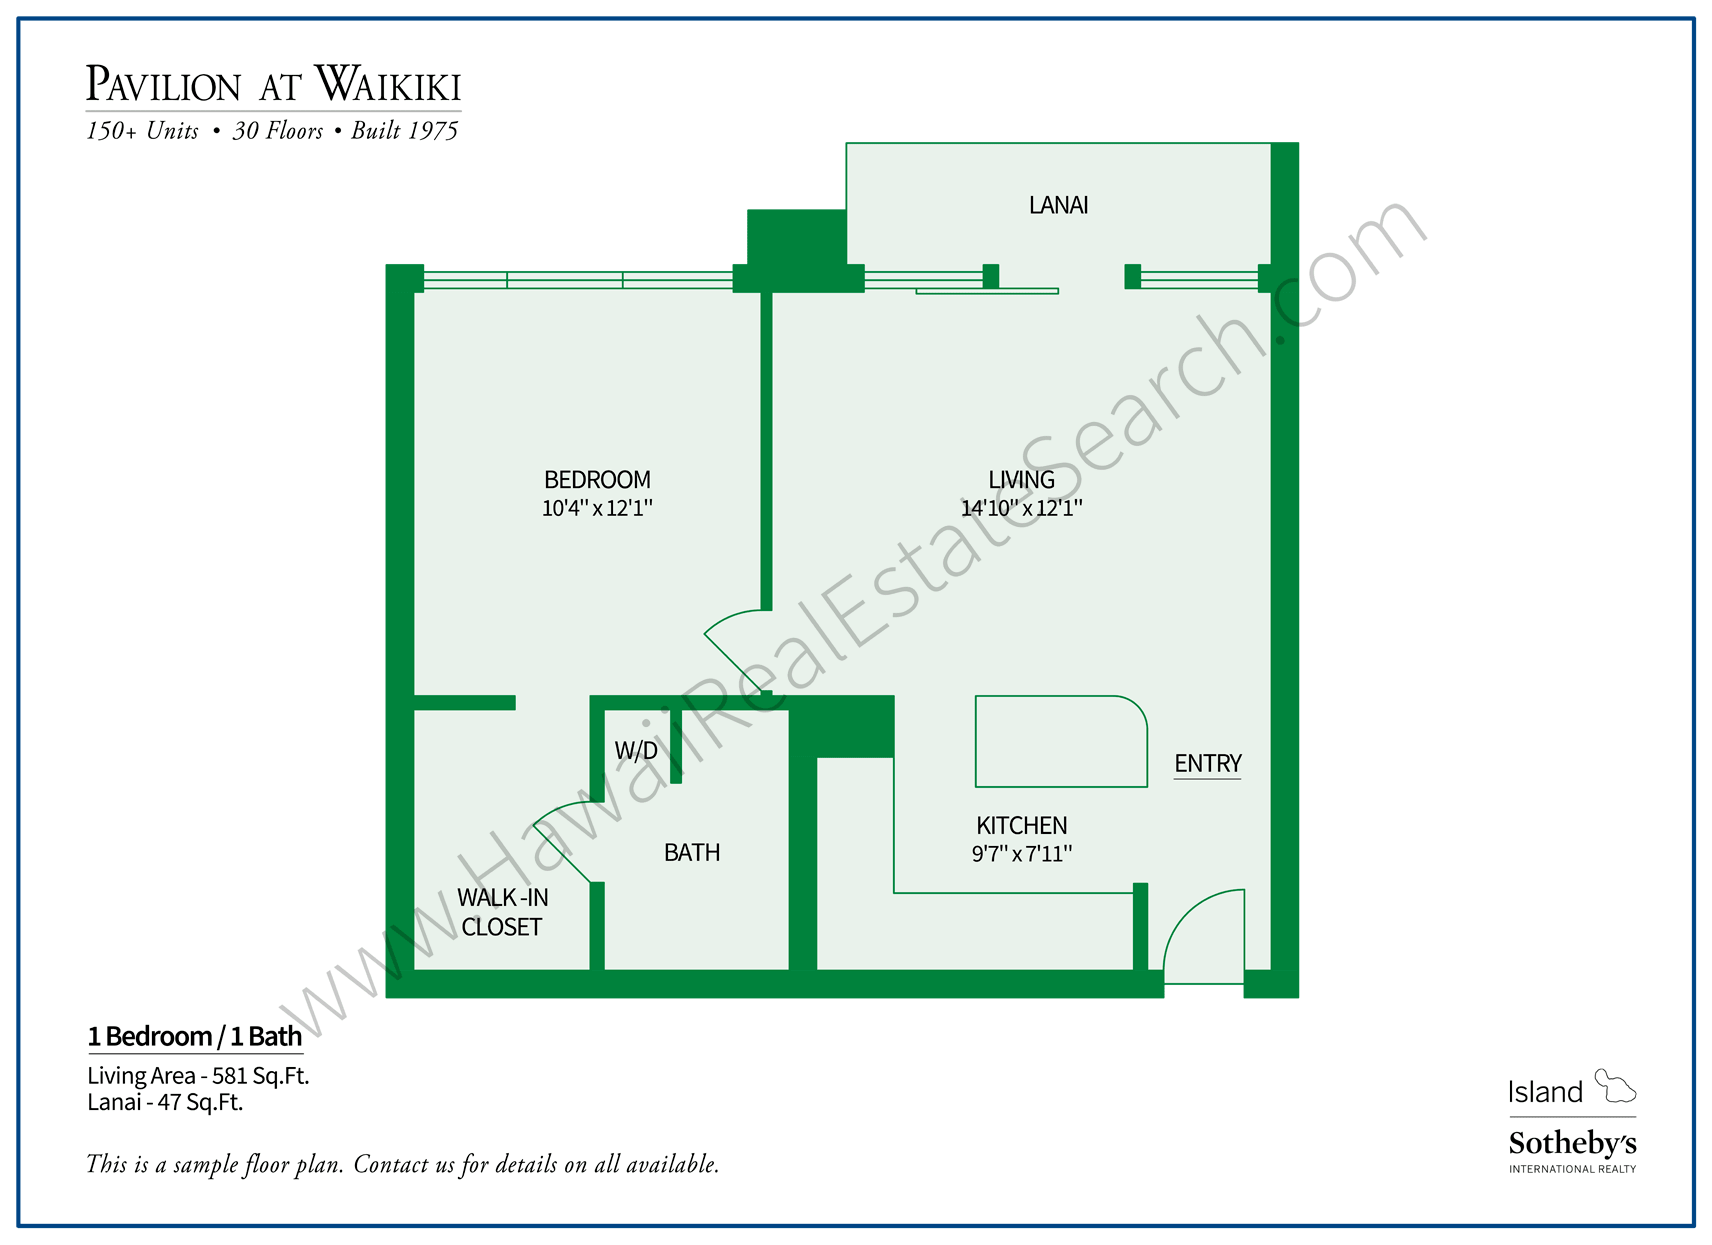 Pavilion at Waikiki Floor Plan